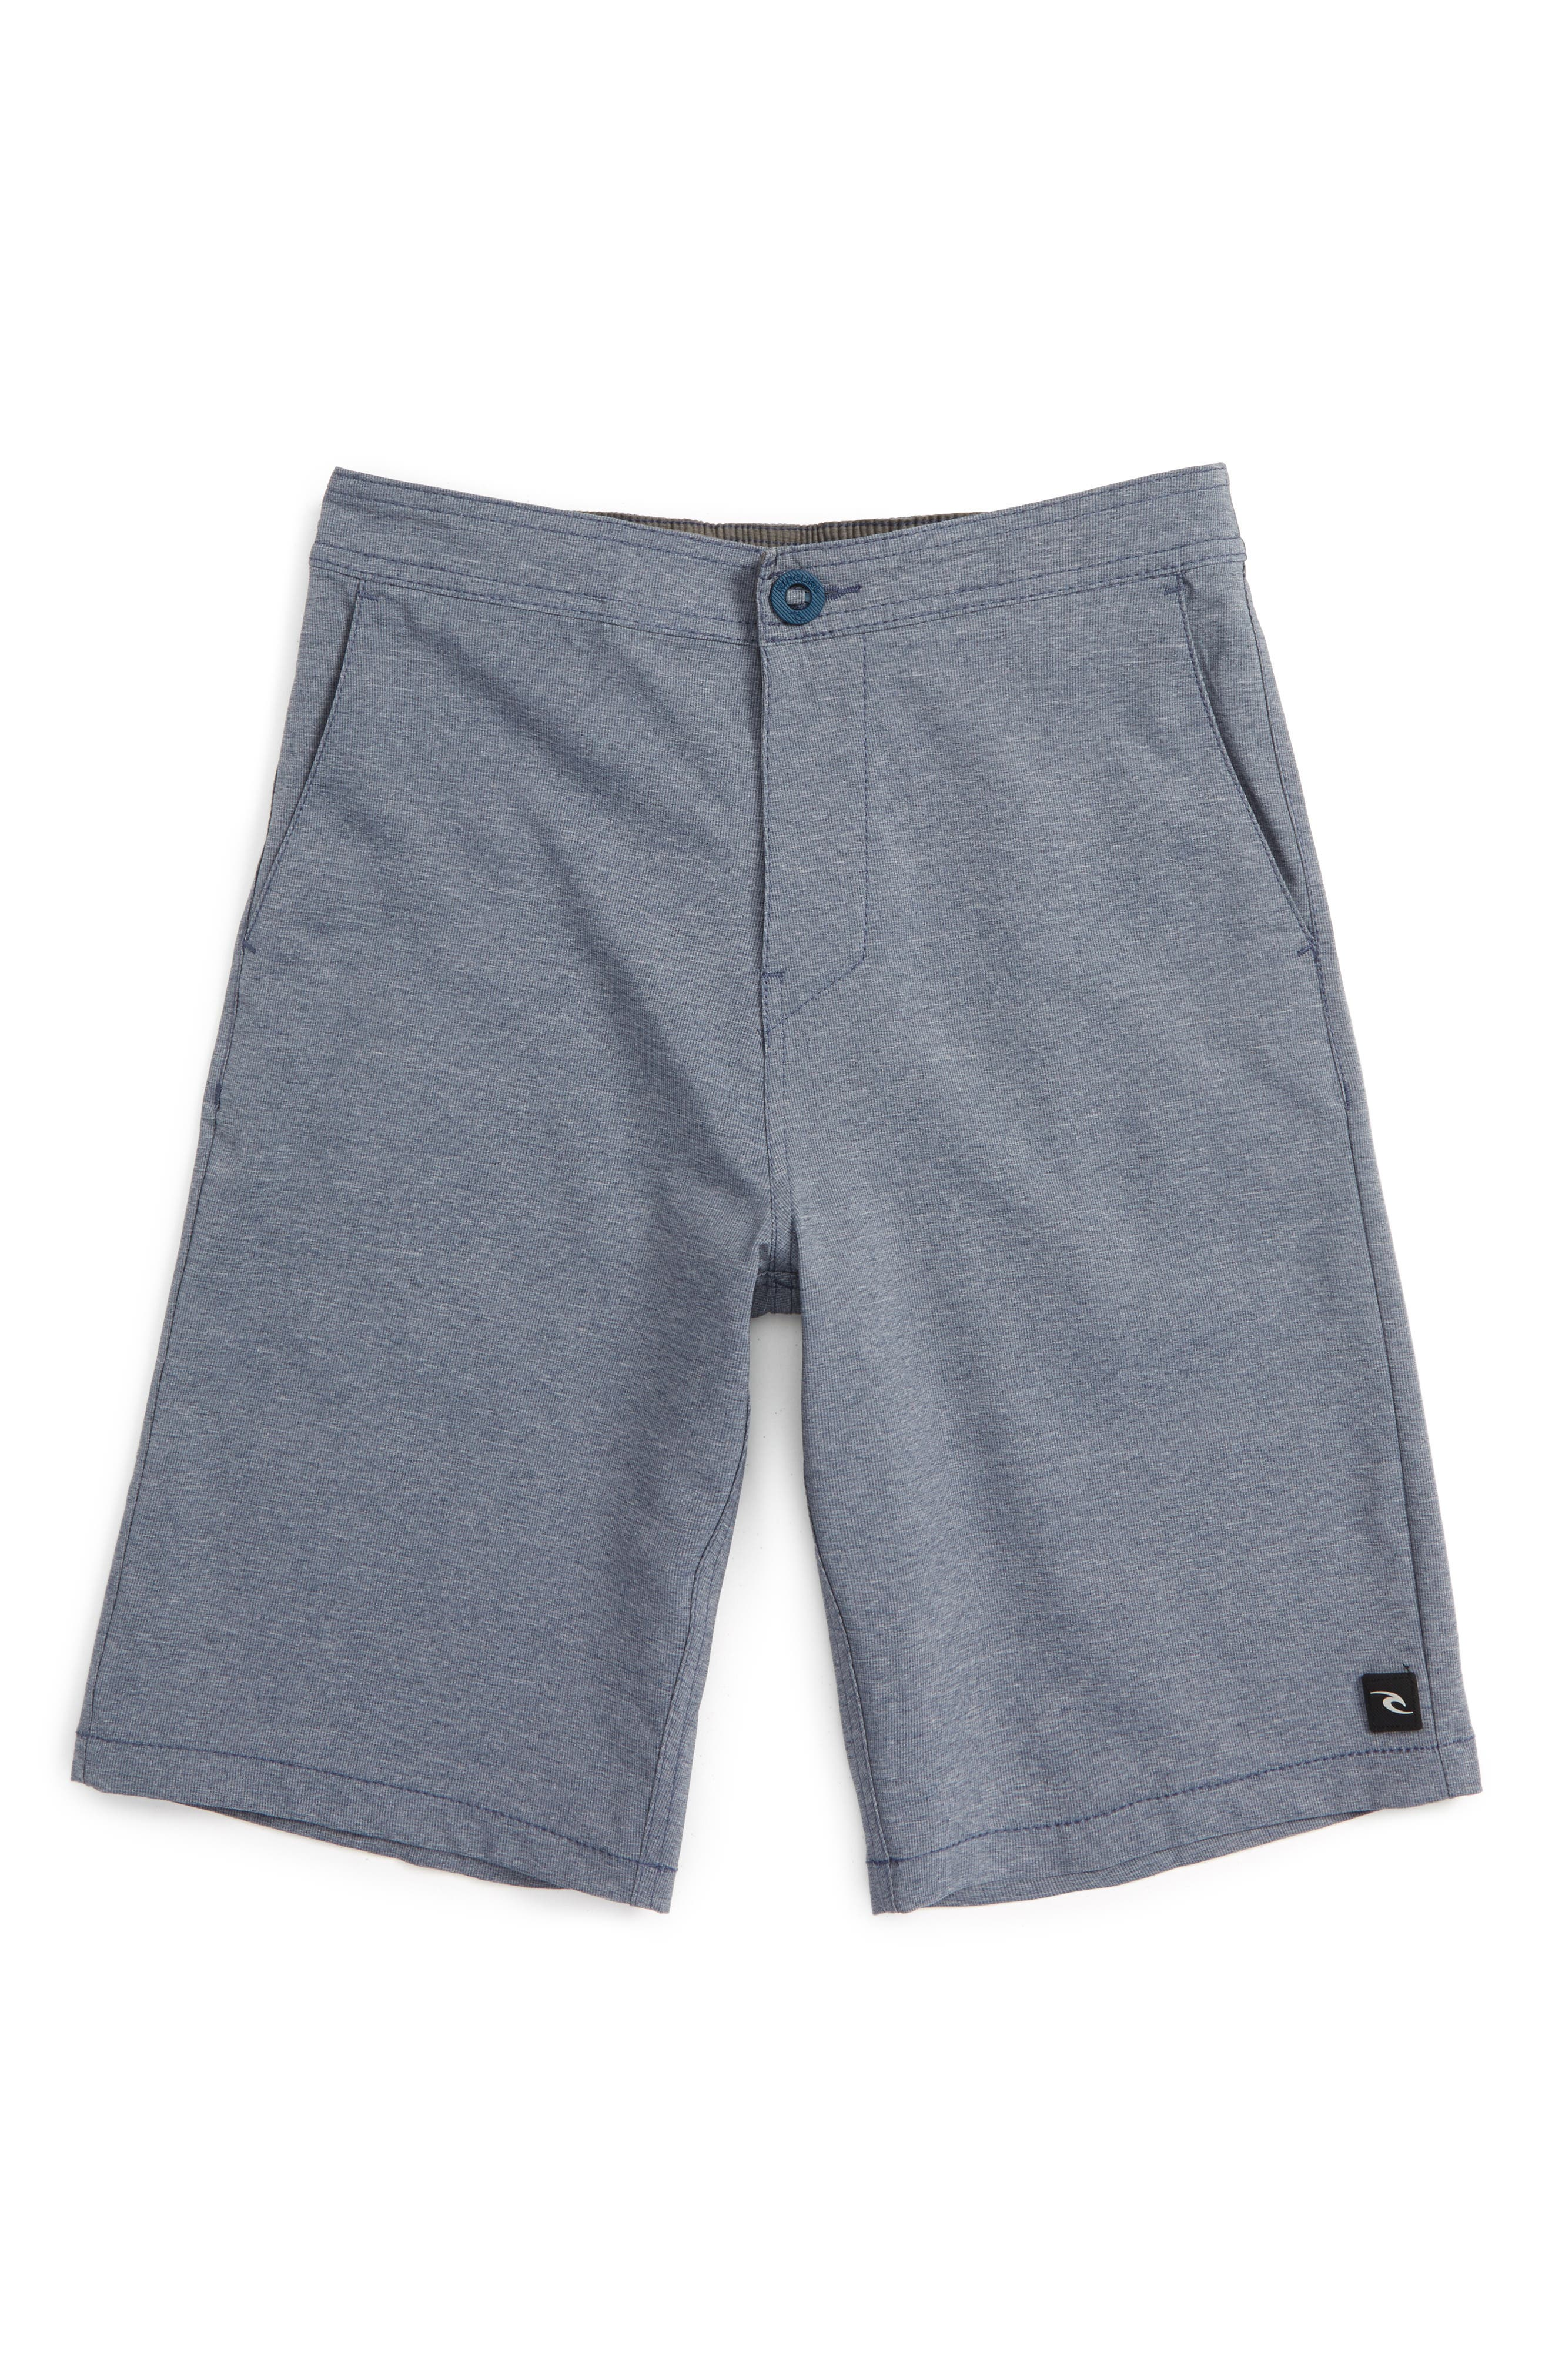 Alternate Image 1 Selected - Rip Curl Omaha Hybrid Board Shorts (Big Boys)